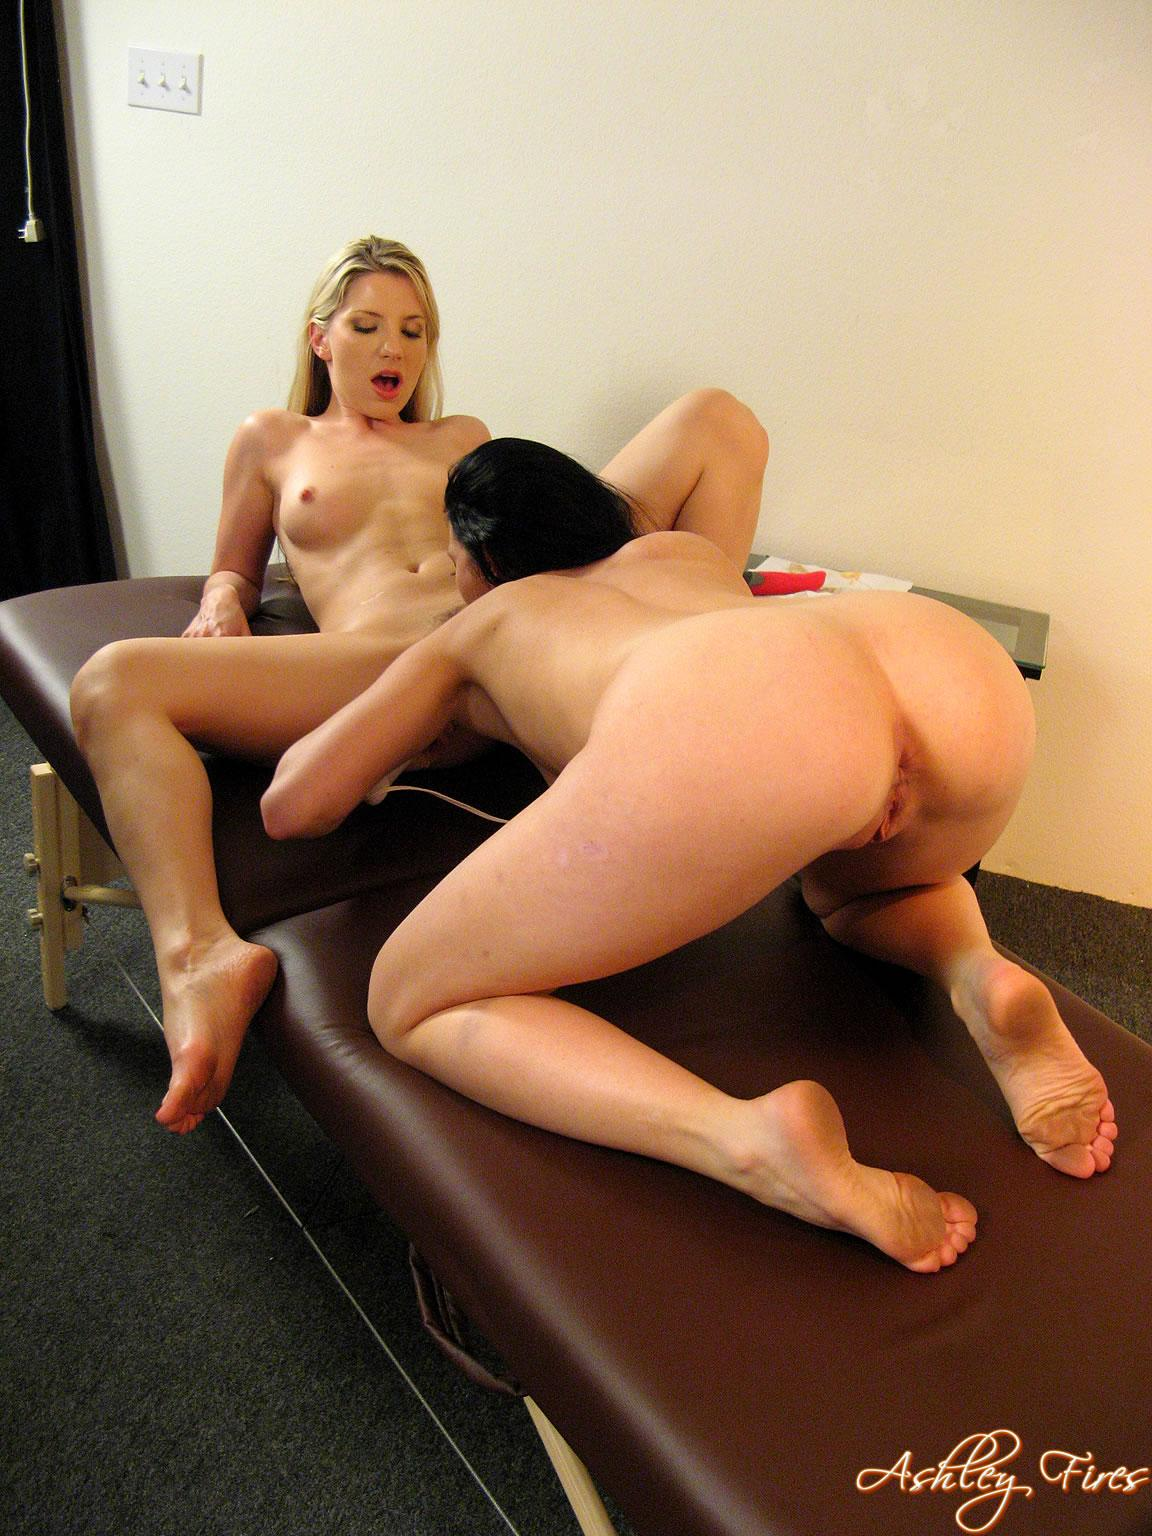 Pictures of Ashley Fires getting some hot lesbian sex.